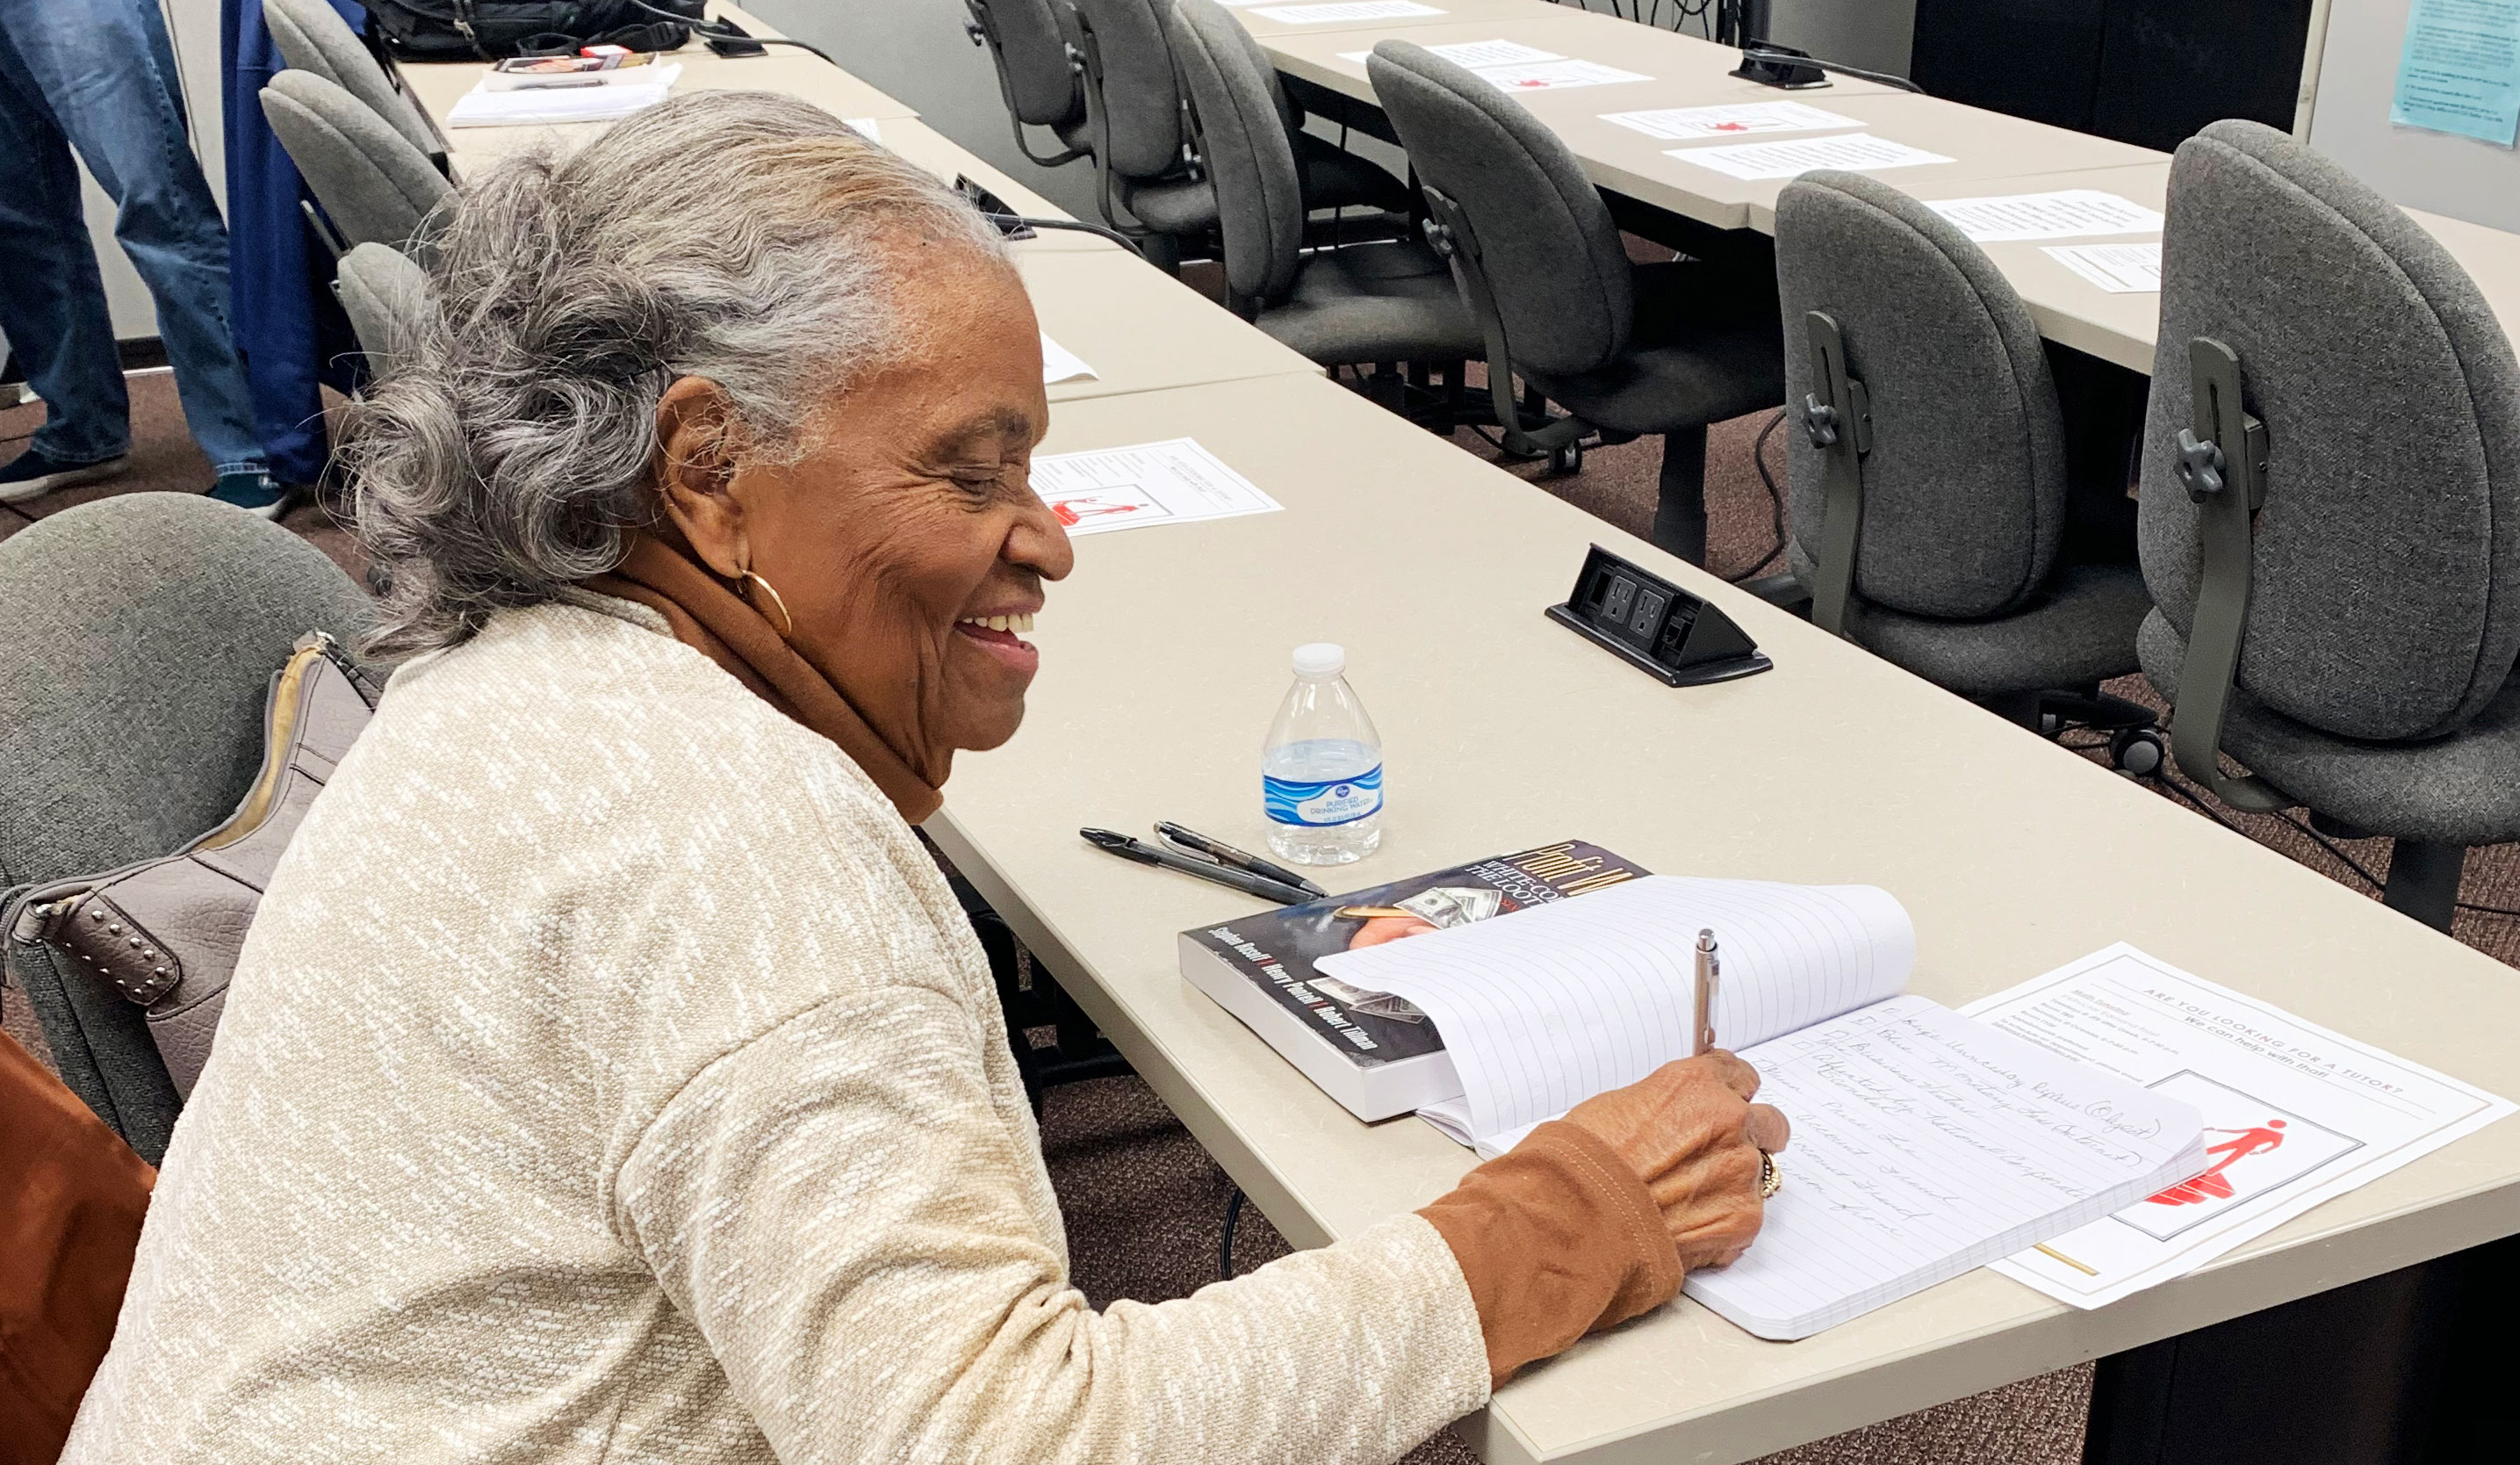 Lifelong Learning: Virginia students pursues degree at 81